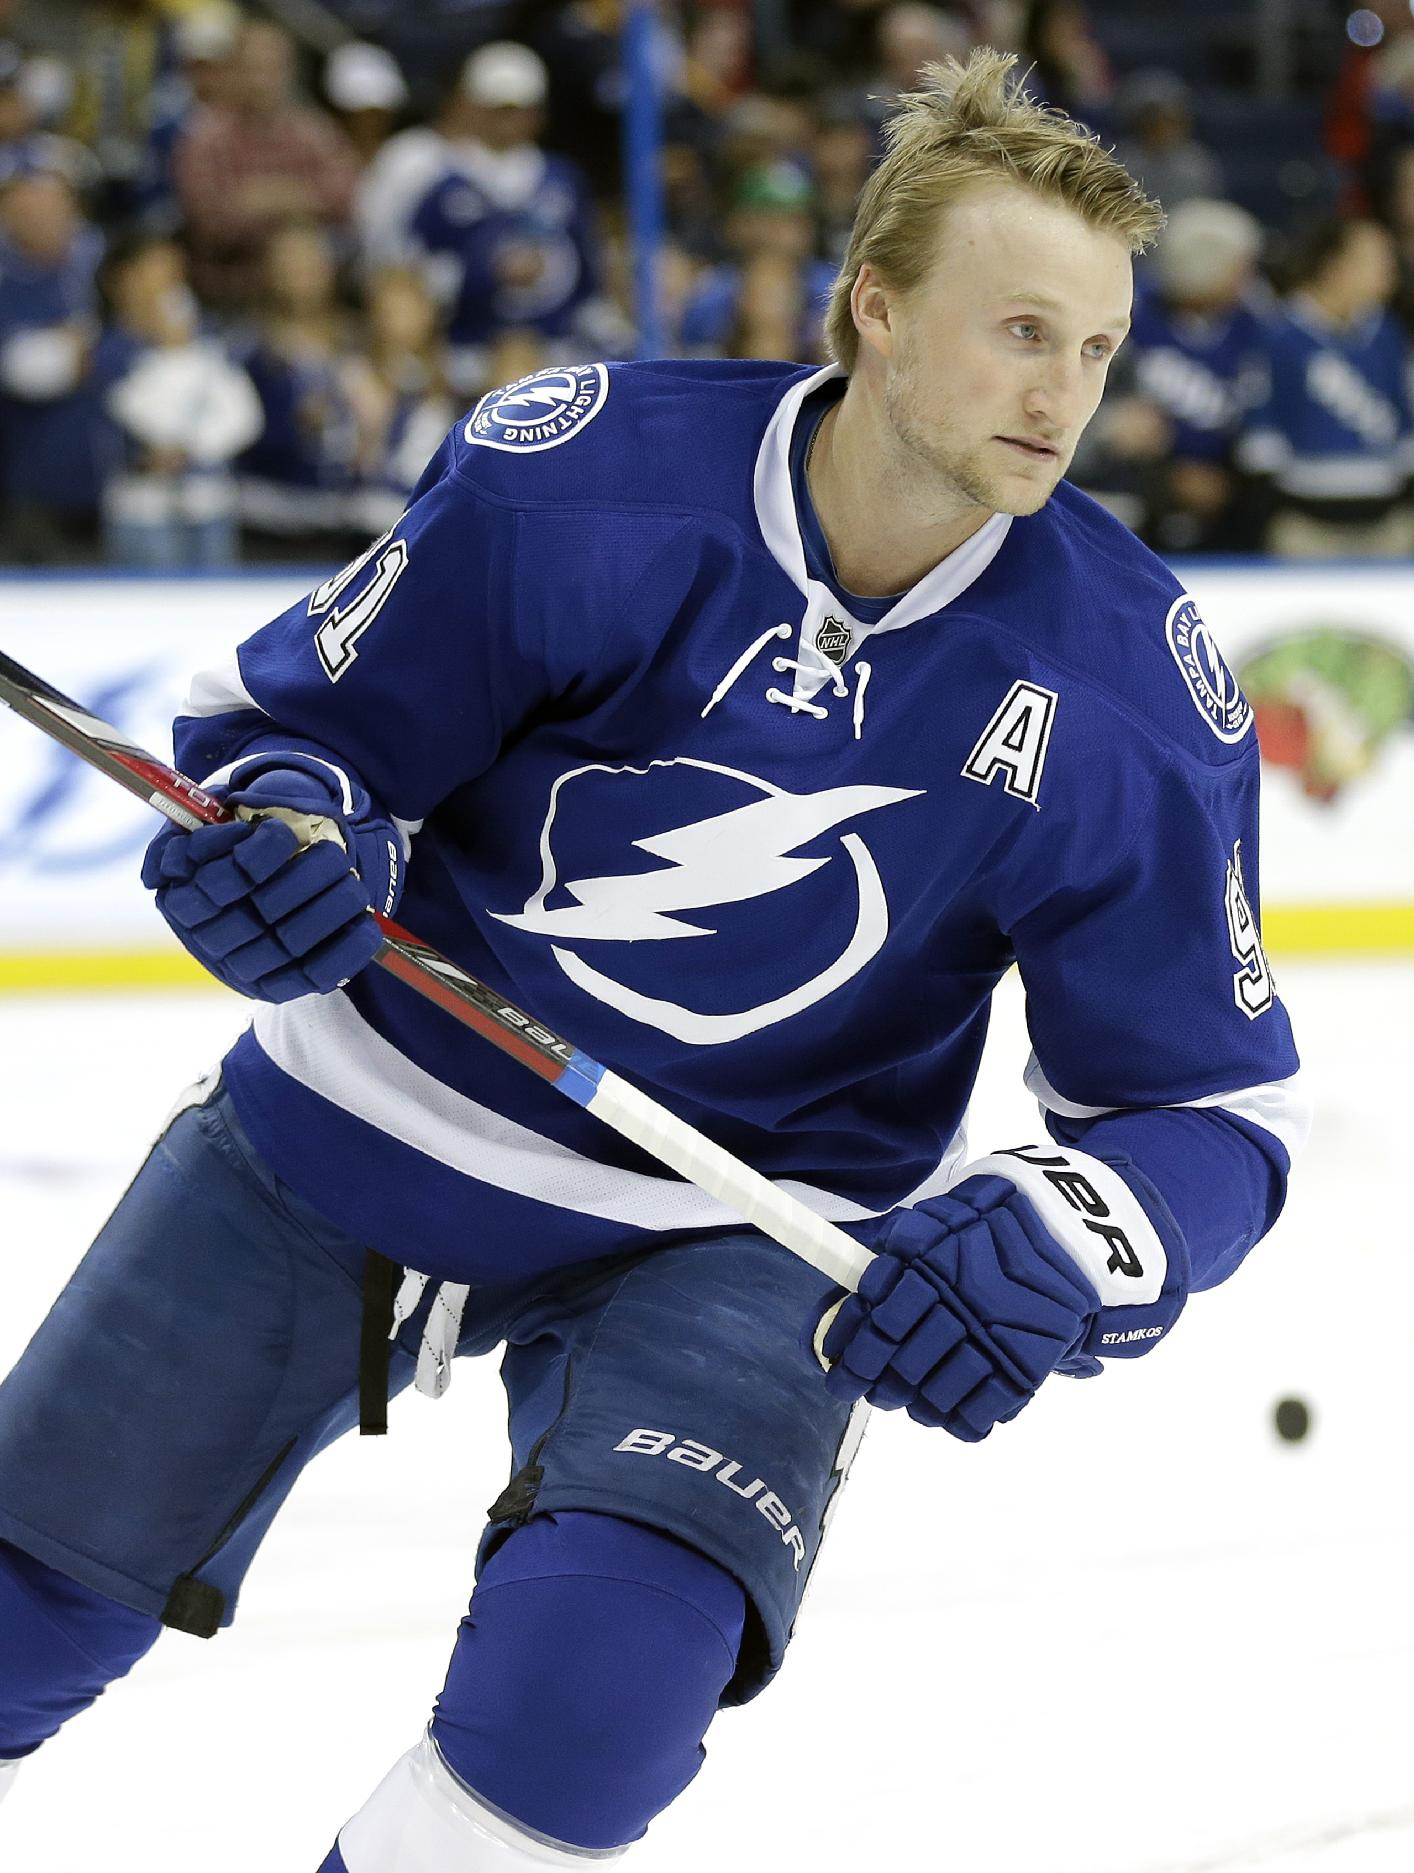 Tampa Bay Lightning center Steven Stamkos (91) skates during warm ups before an NHL hockey game Thursday, March 6, 2014, in Tampa, Fla. Stamkos will be playing his first game since breaking his right tibia on Nov. 11, 2013 in Boston